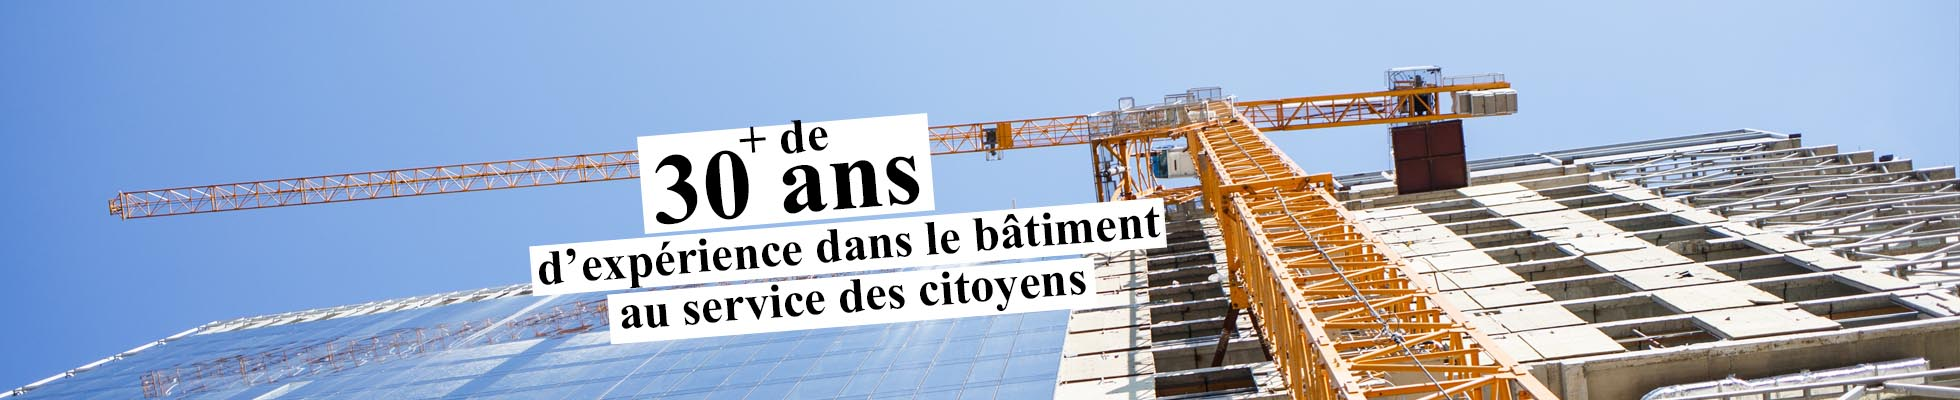 Patrick Lalevee expertise batiment mediation Gard